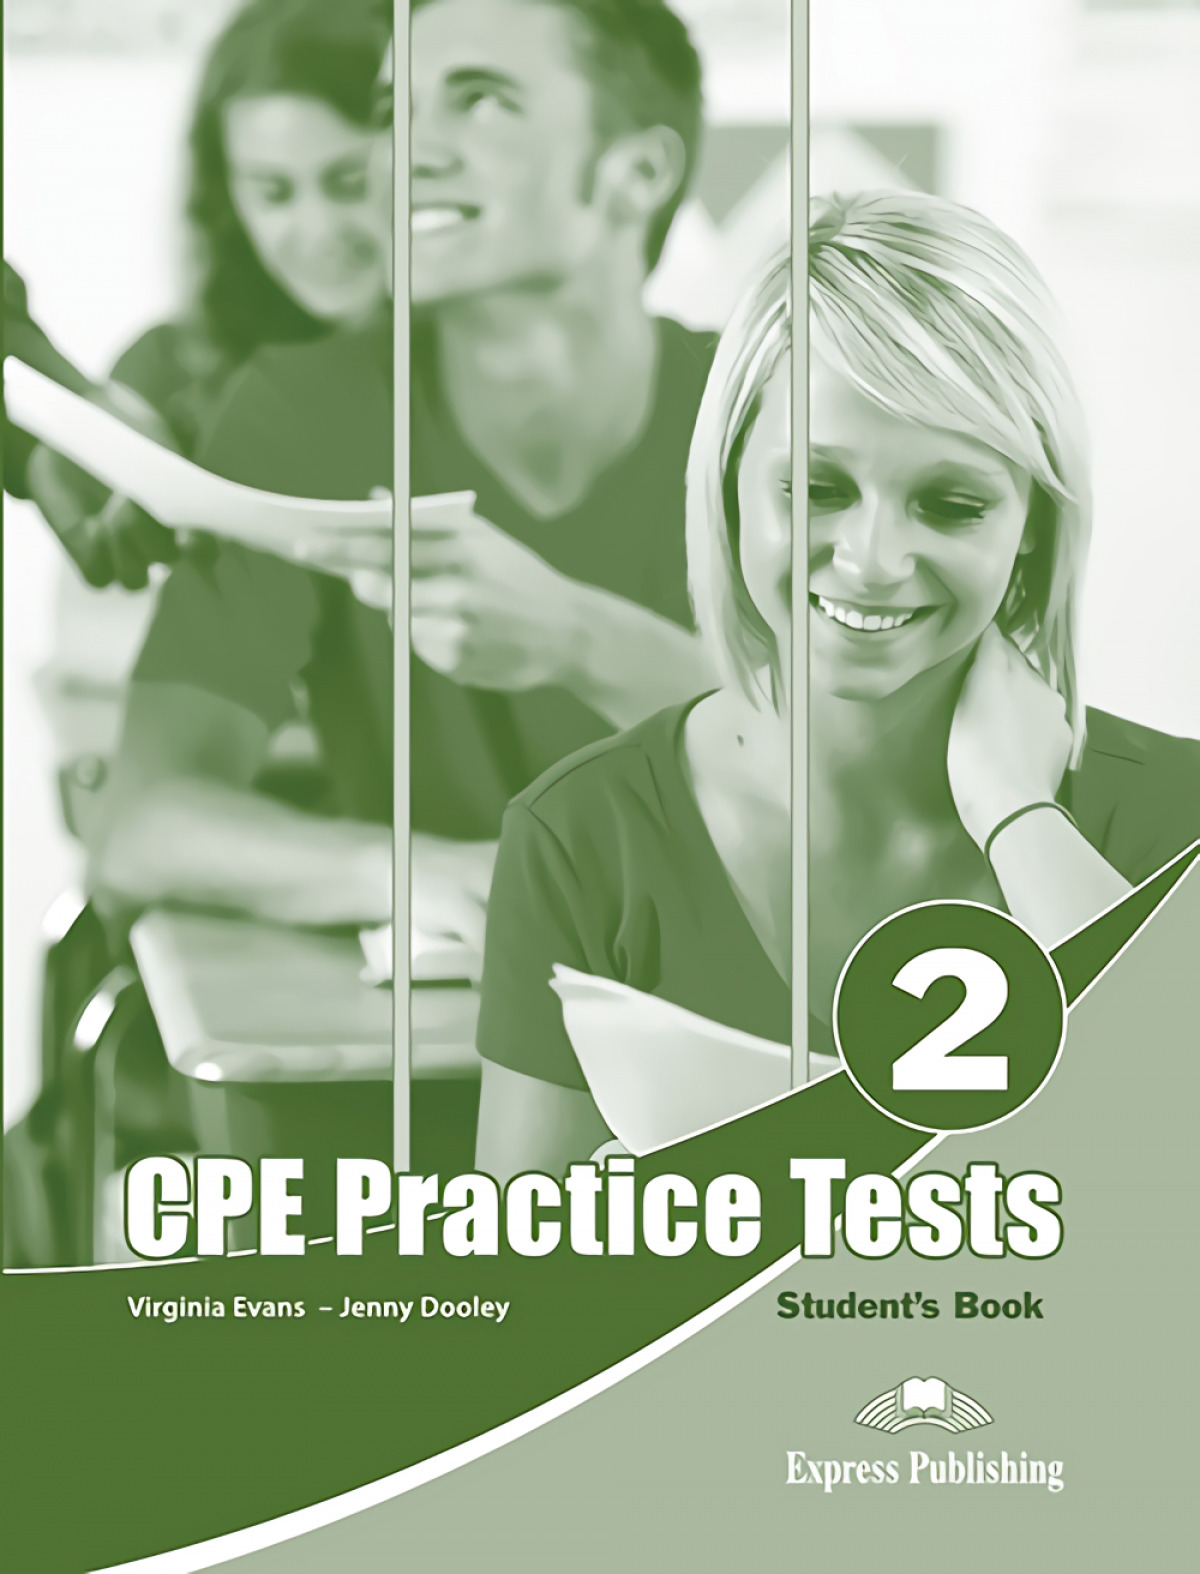 (19).PRACTICE TESTS FOR CPE 2 STUDENT´S BOOK